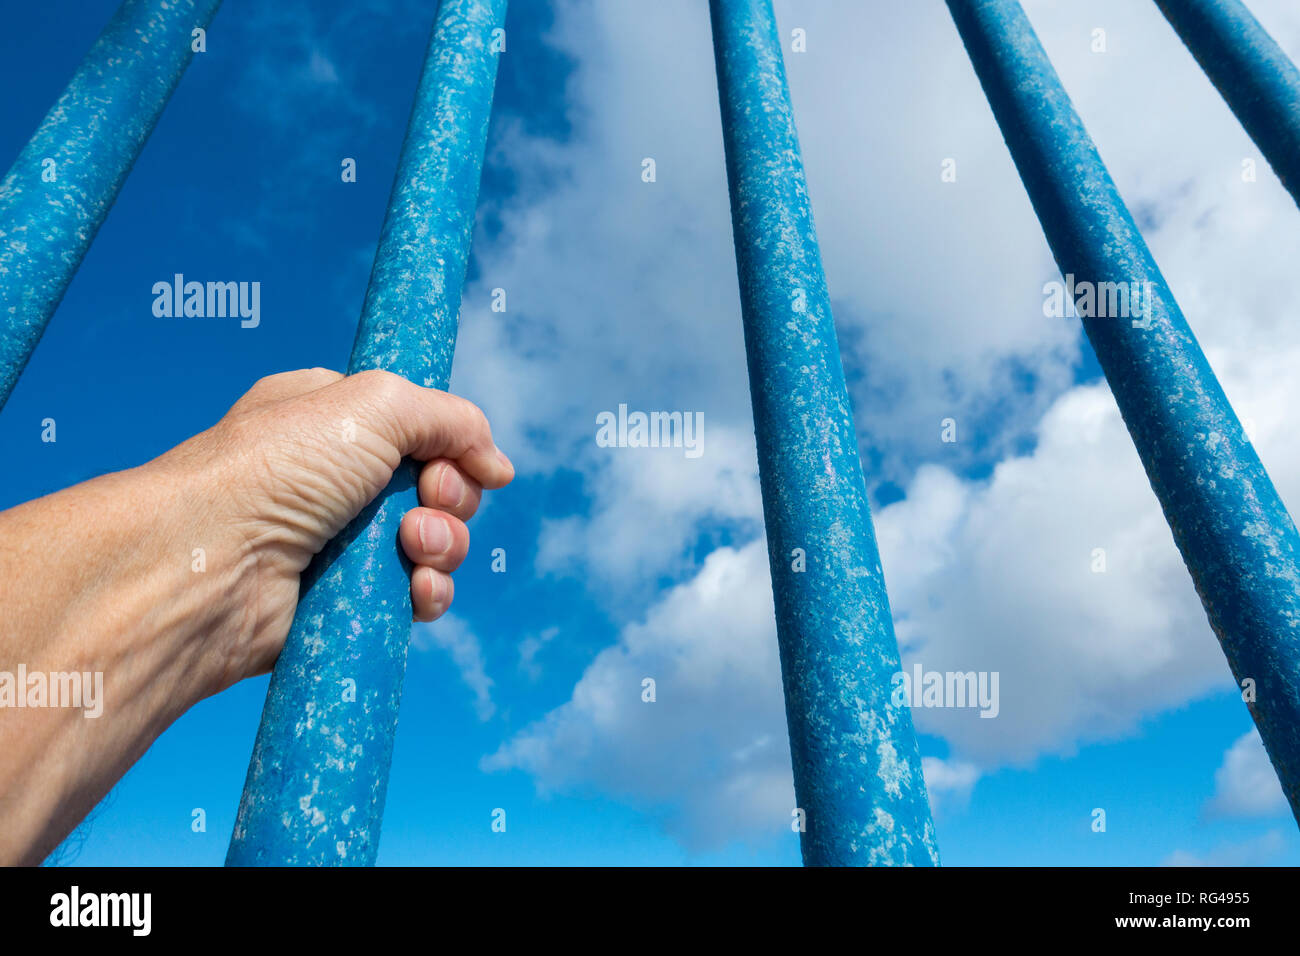 Person behind bars against blue sky. Asylum, border control, illegal immigration, prison... concept. - Stock Image